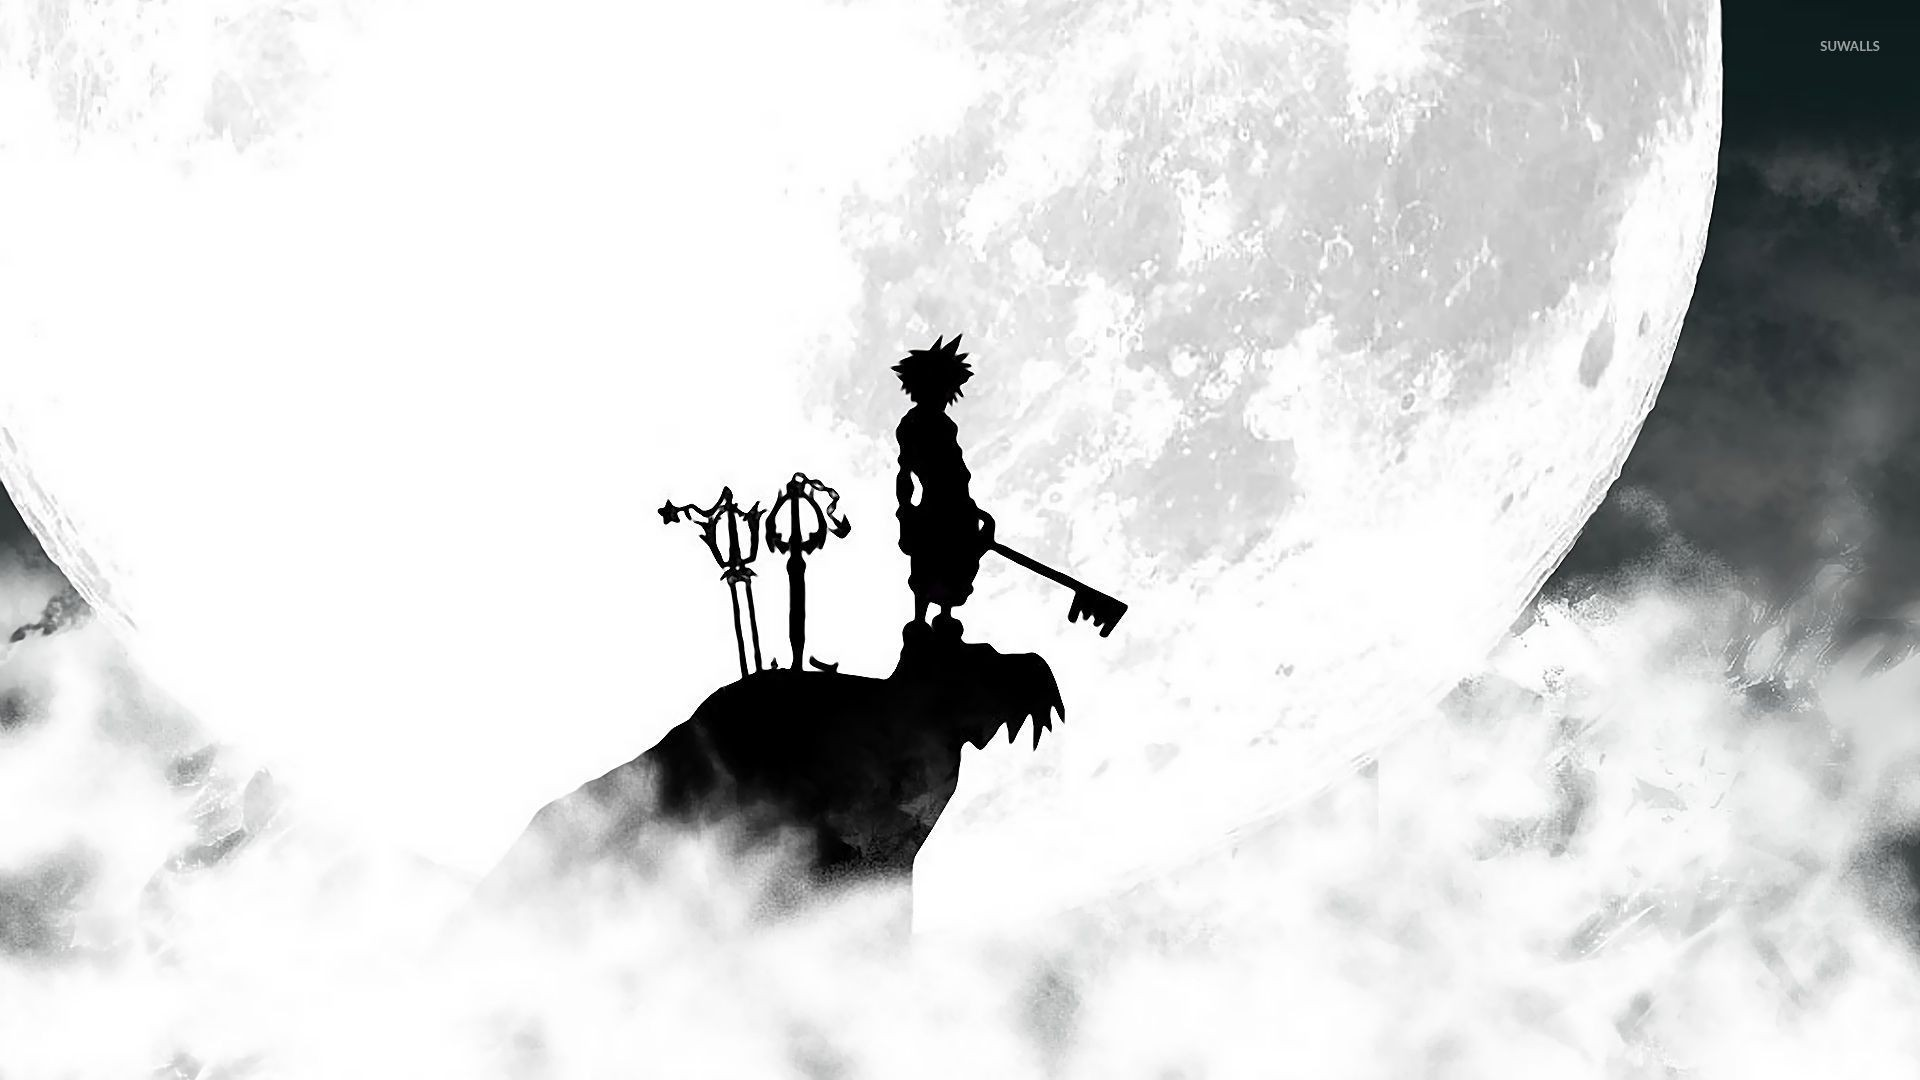 Kingdom Hearts Wallpaper Download Free Cool Hd Backgrounds For